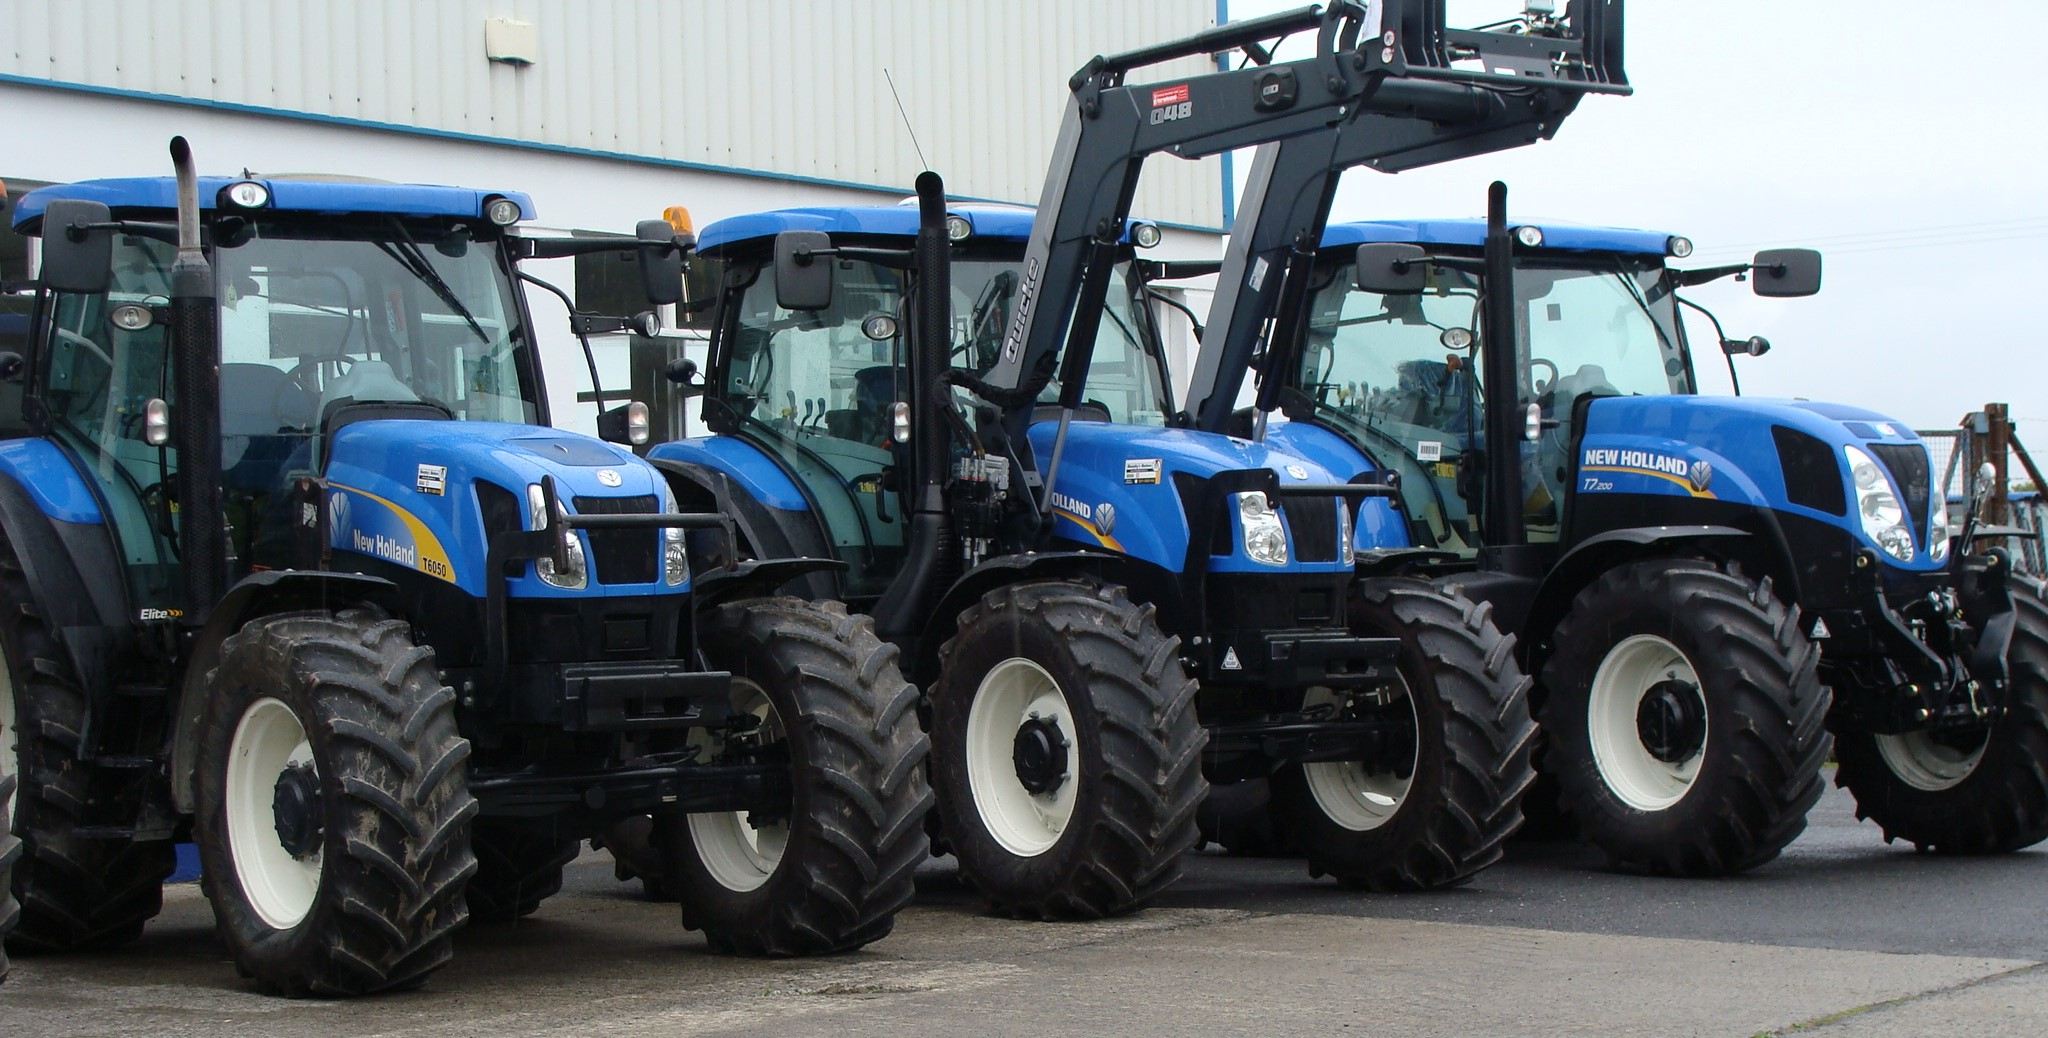 Murphy's Motors is a family run business established in 1960, at a time when mechanised farming began to take hold in Ireland.